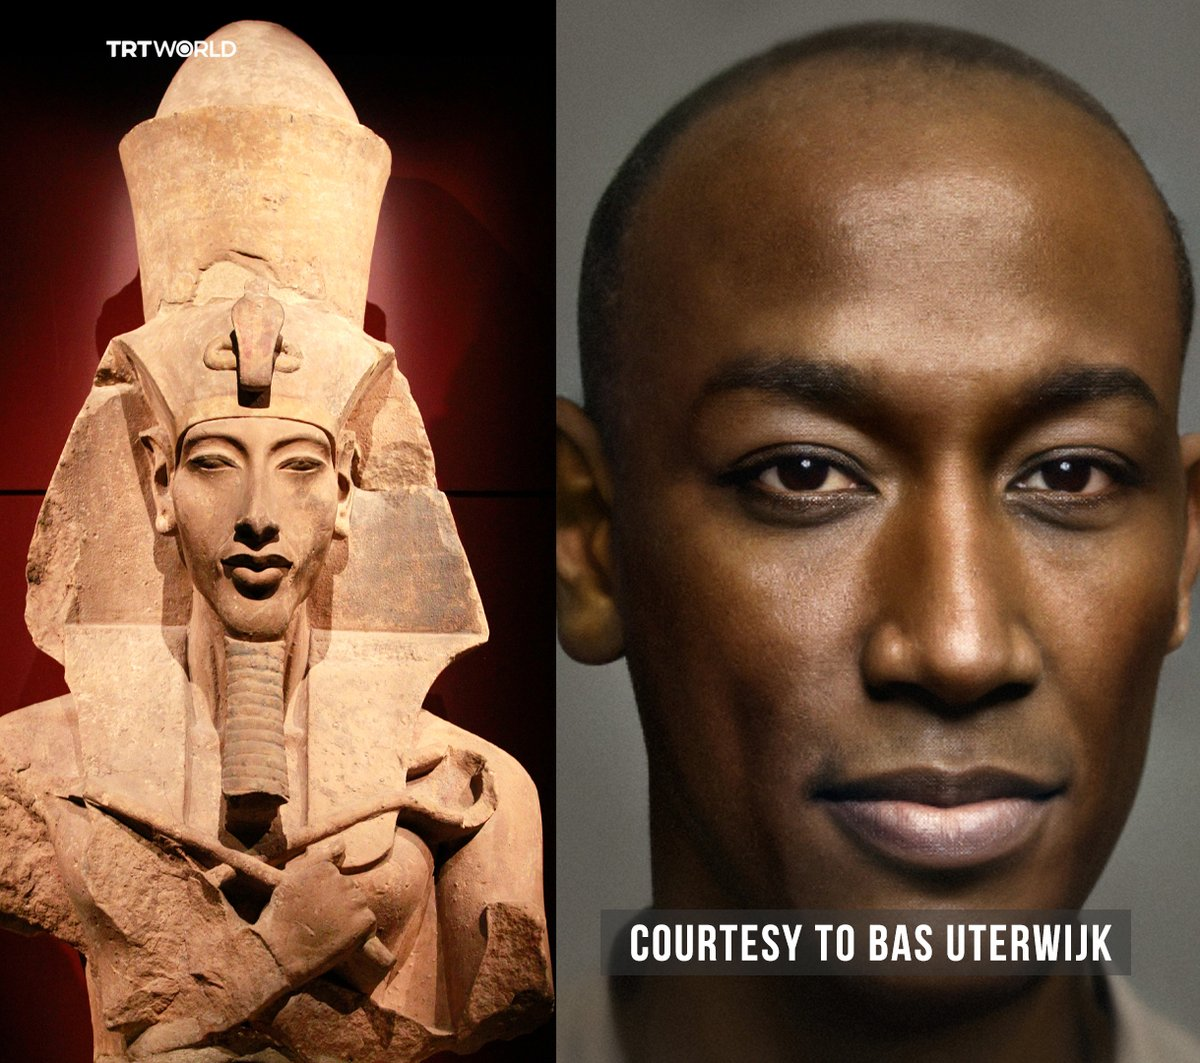 trtworld: Have you ever imagined how Egyptian King Akhenaten and Queen Nefertiti would look like today?   Dutch photographer Bas Uterwijk converts the old carvings and engravings into photographs by using artificial intelligence